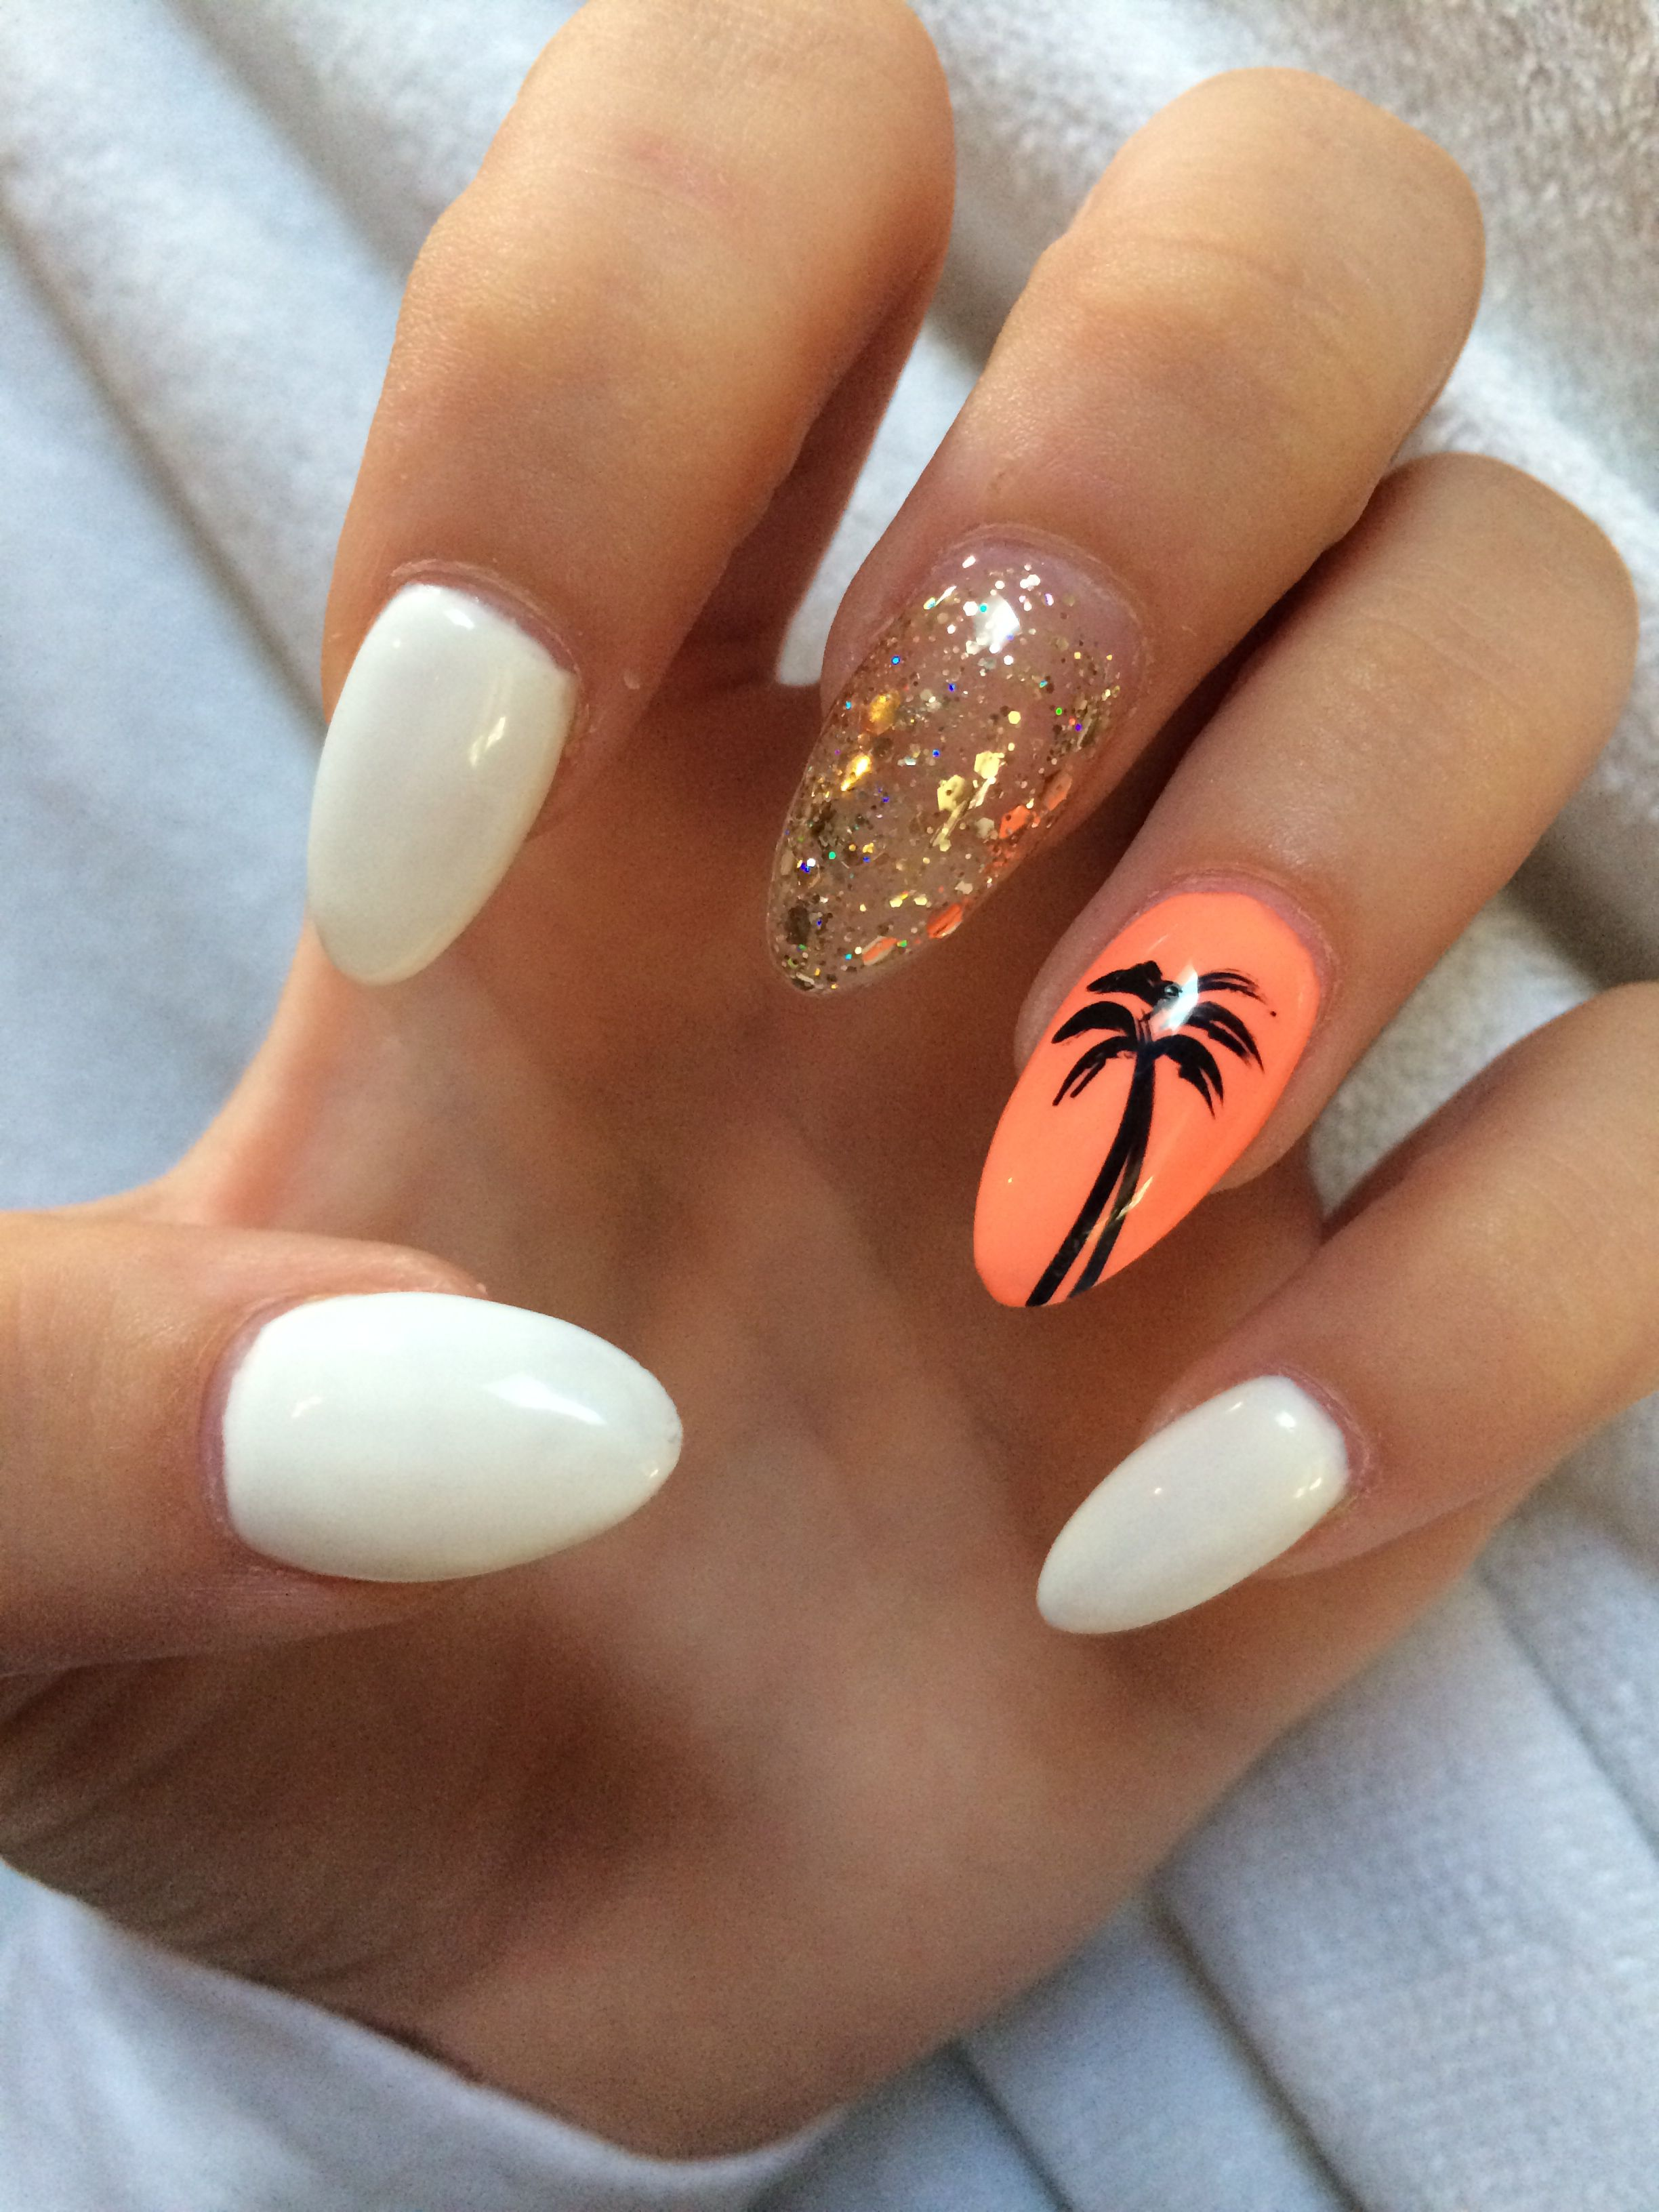 Vacation nails | loveeee | Pinterest | Vacation nails, Vacation and ...